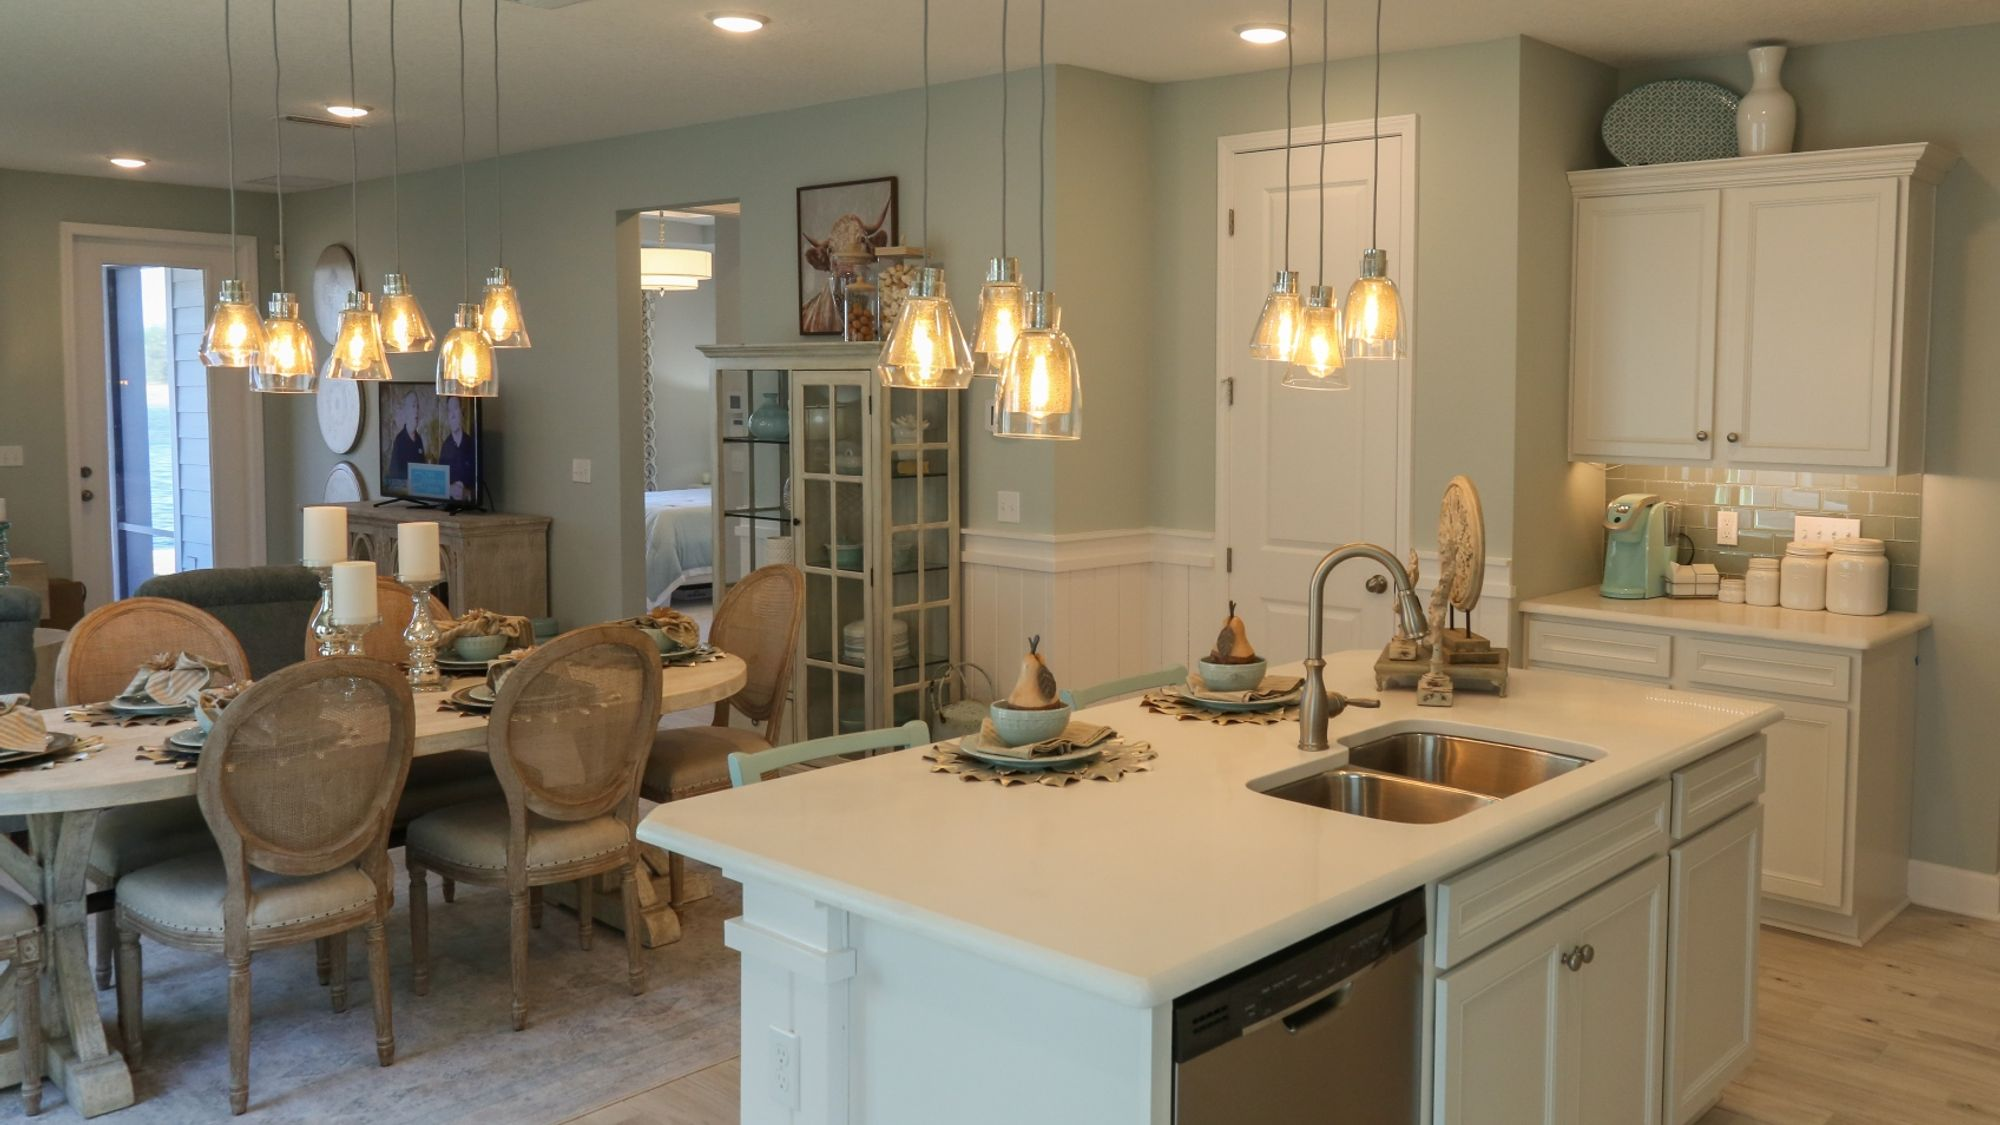 The Hernando Model at Liberty Cove Kitchen